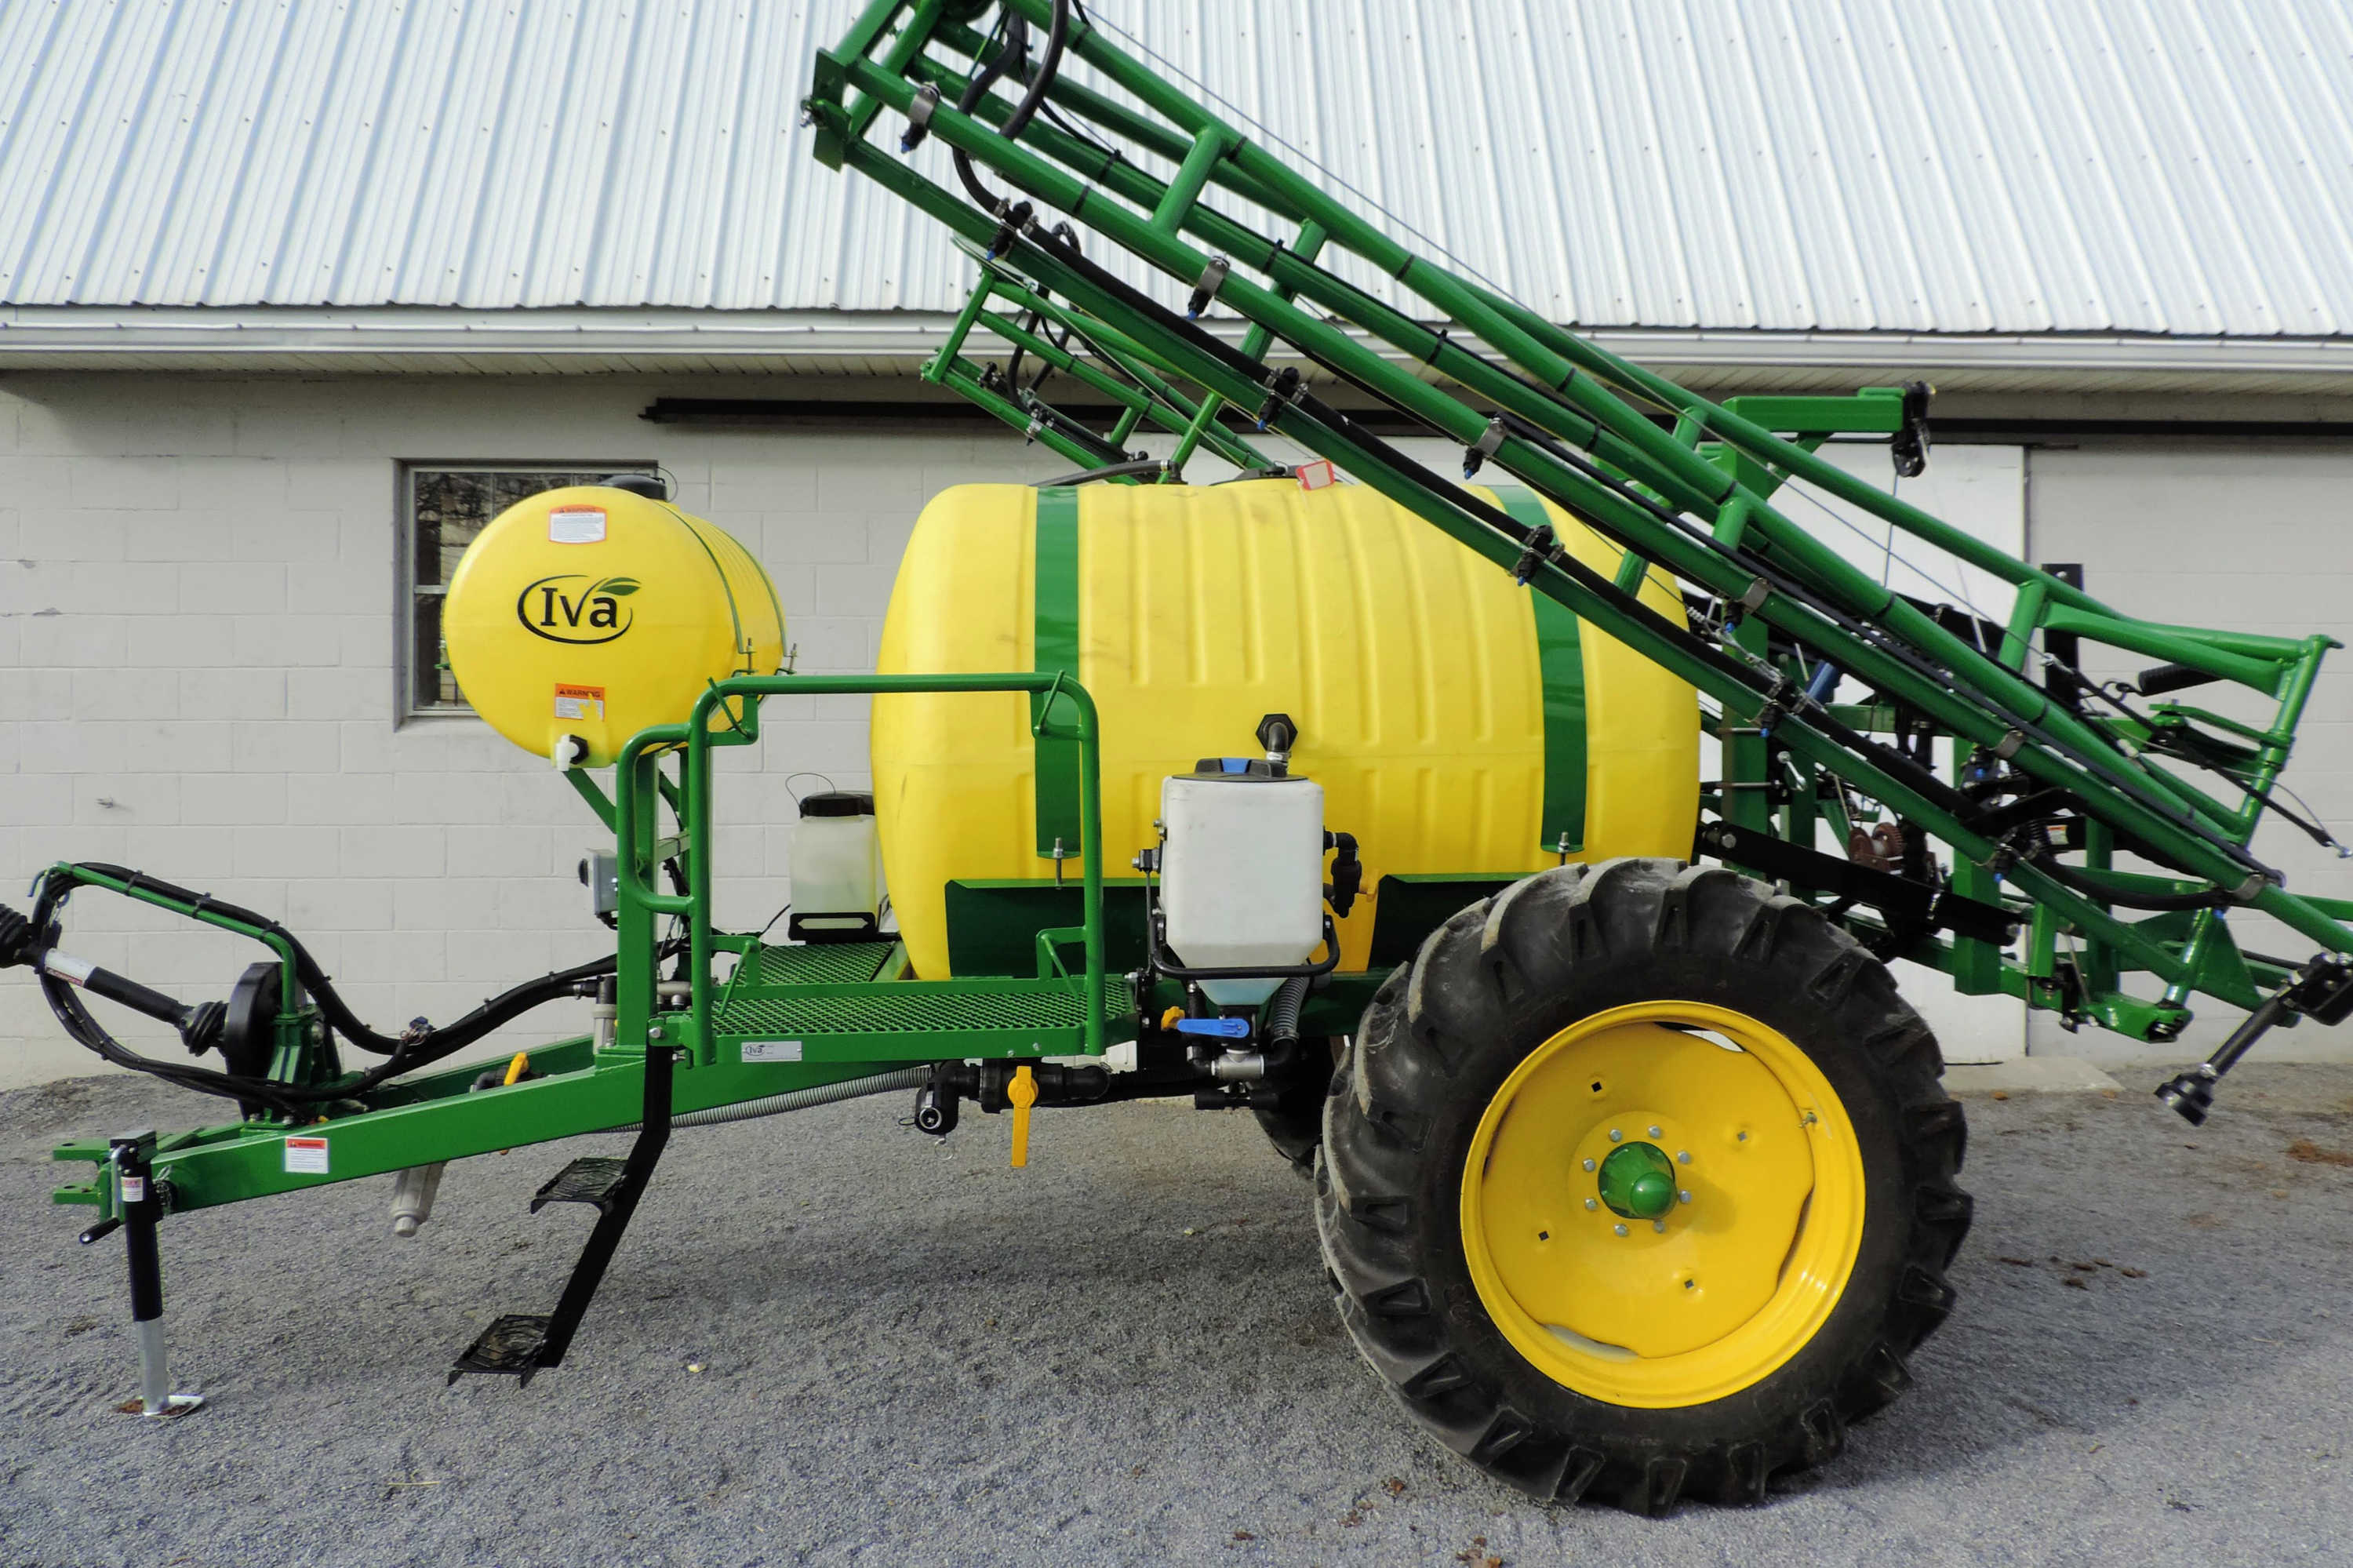 500 gallon Crop Sprayer with 45' SpringRide Booms